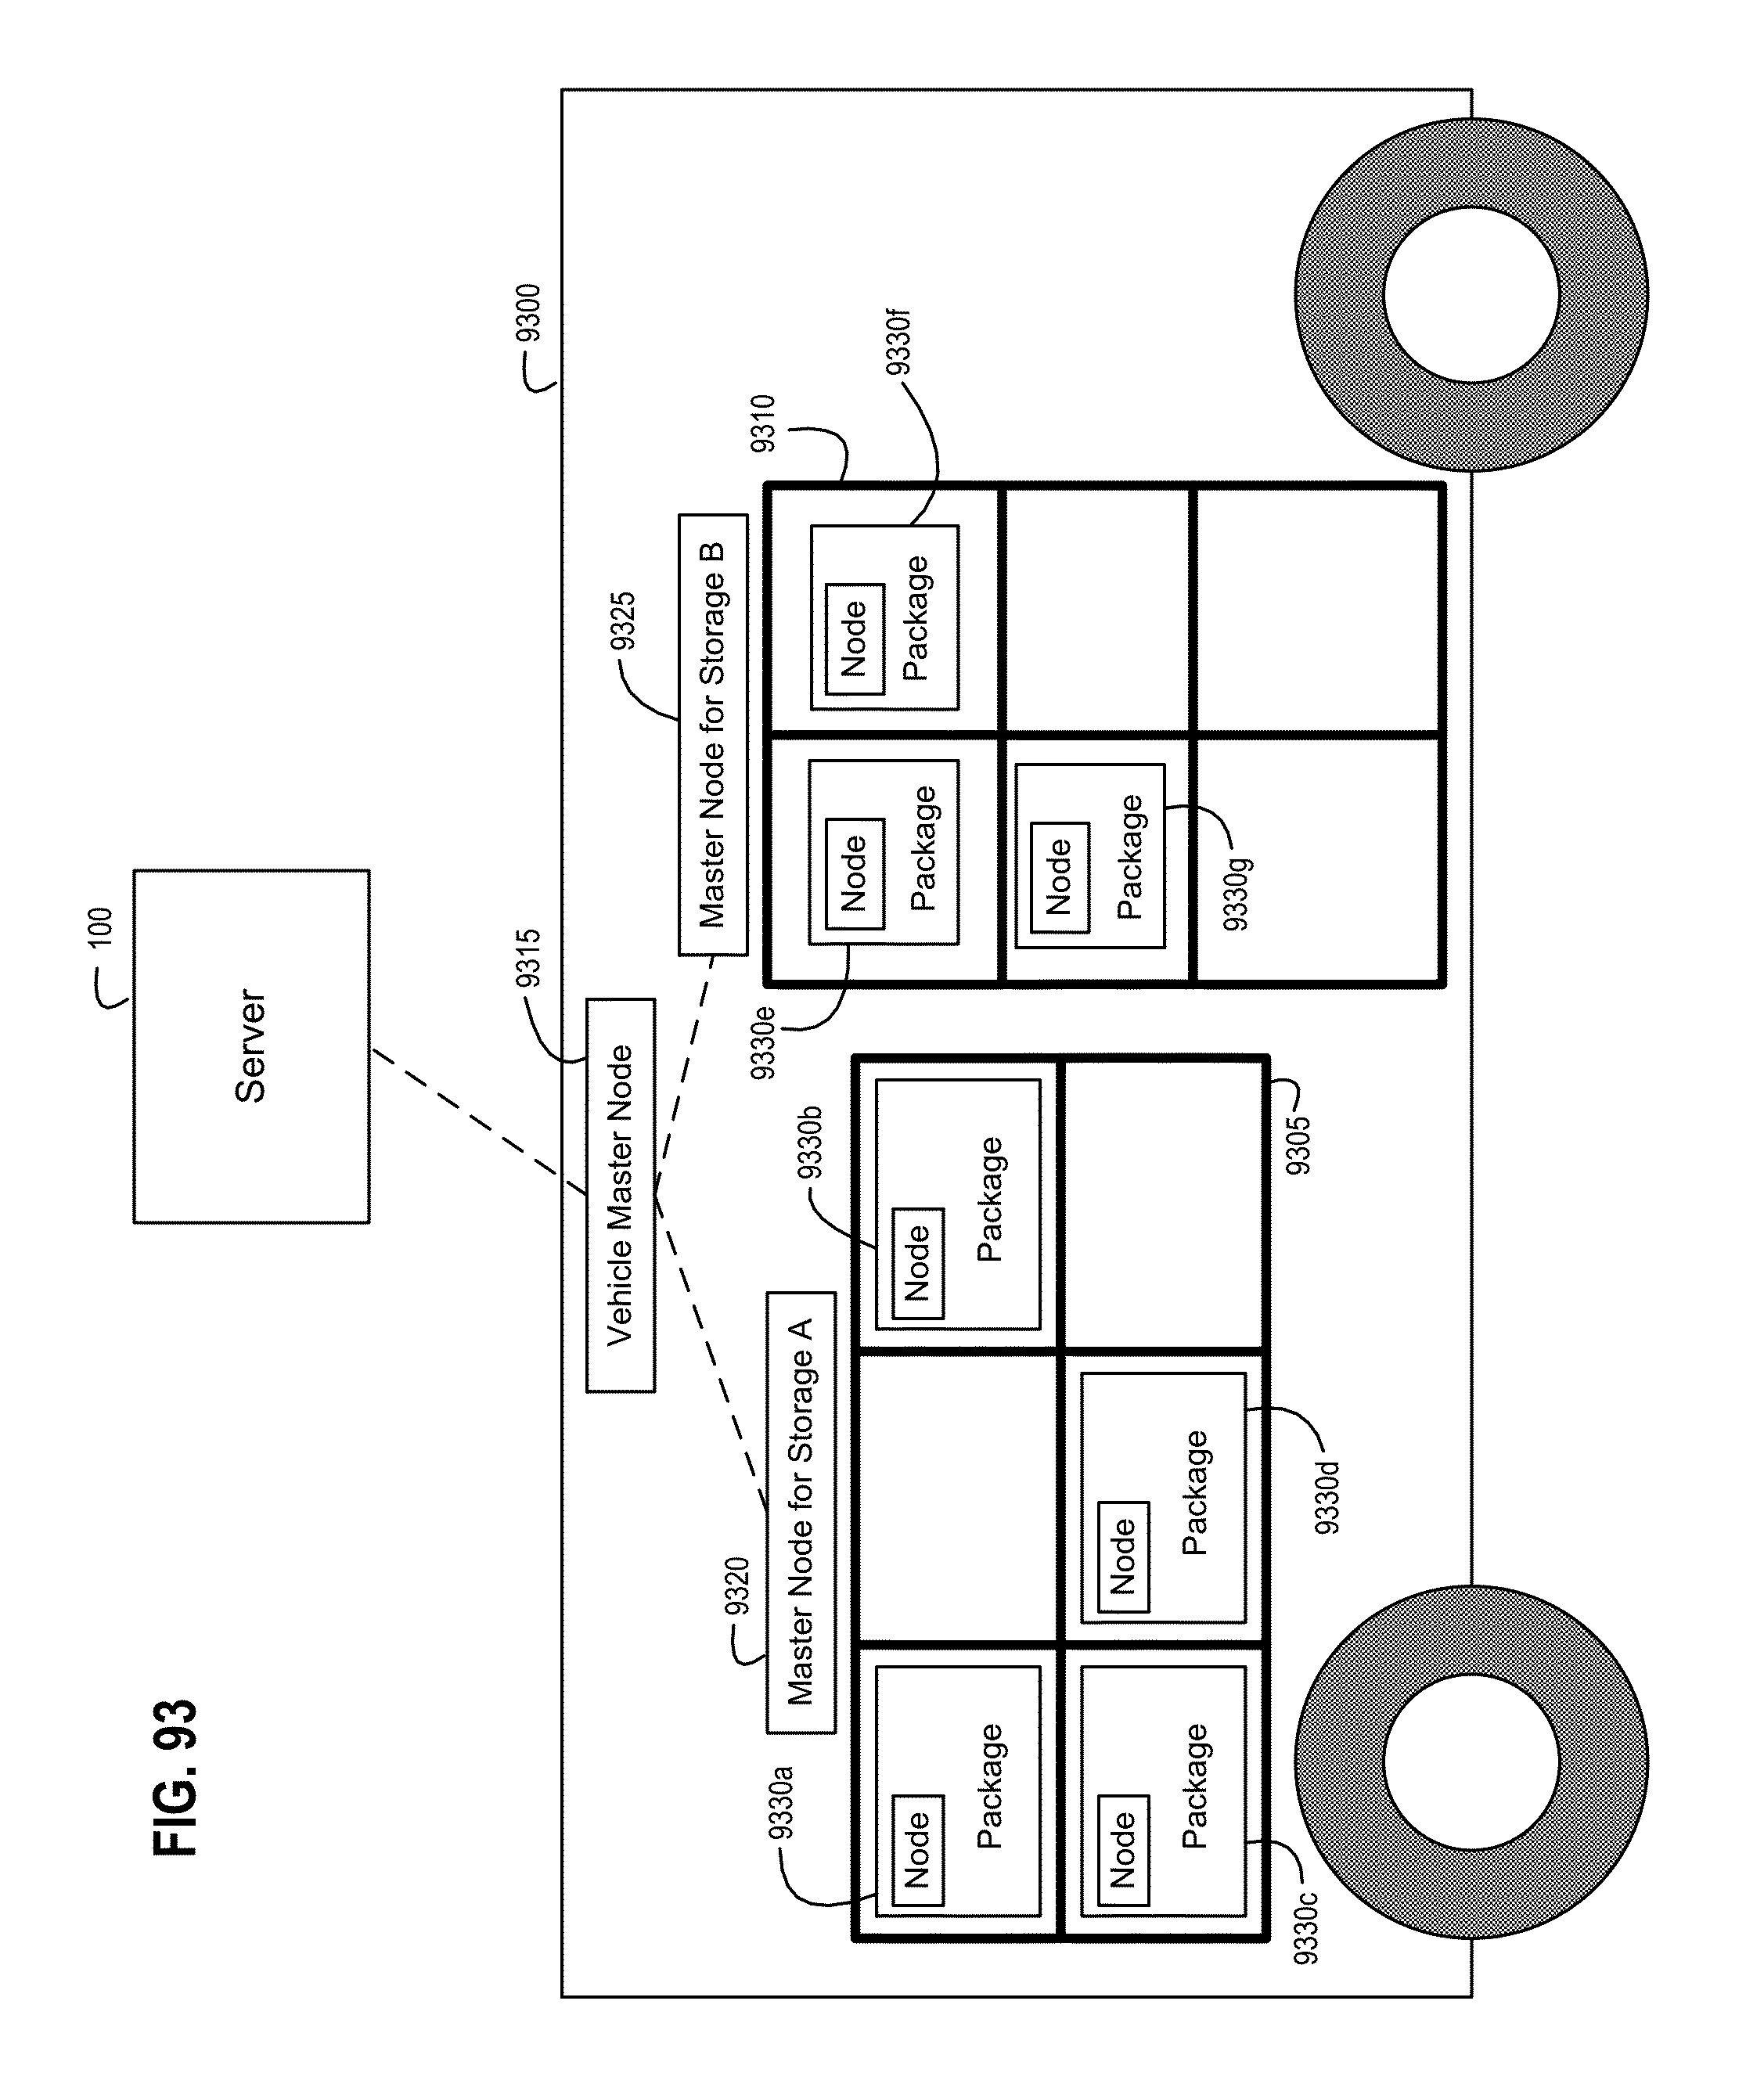 Patent Us 9402242 B2 Train Layout Plans L Shape On Model Wiring Likewise Images